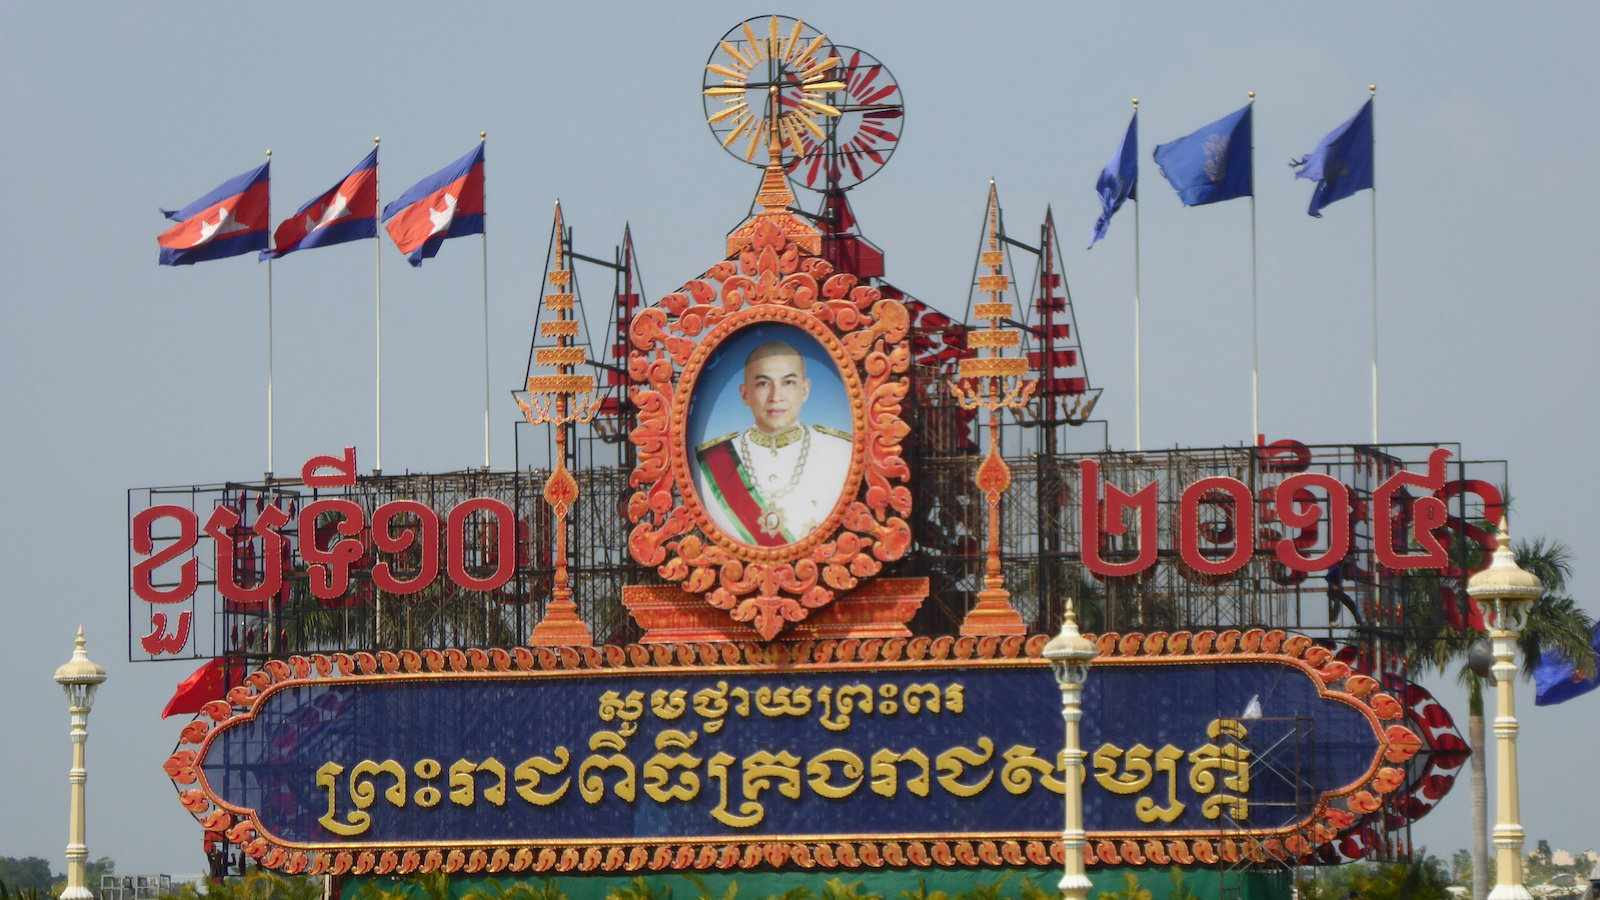 There are rumors that the Cambodian King is gay, but either way the country is quite gay friendly